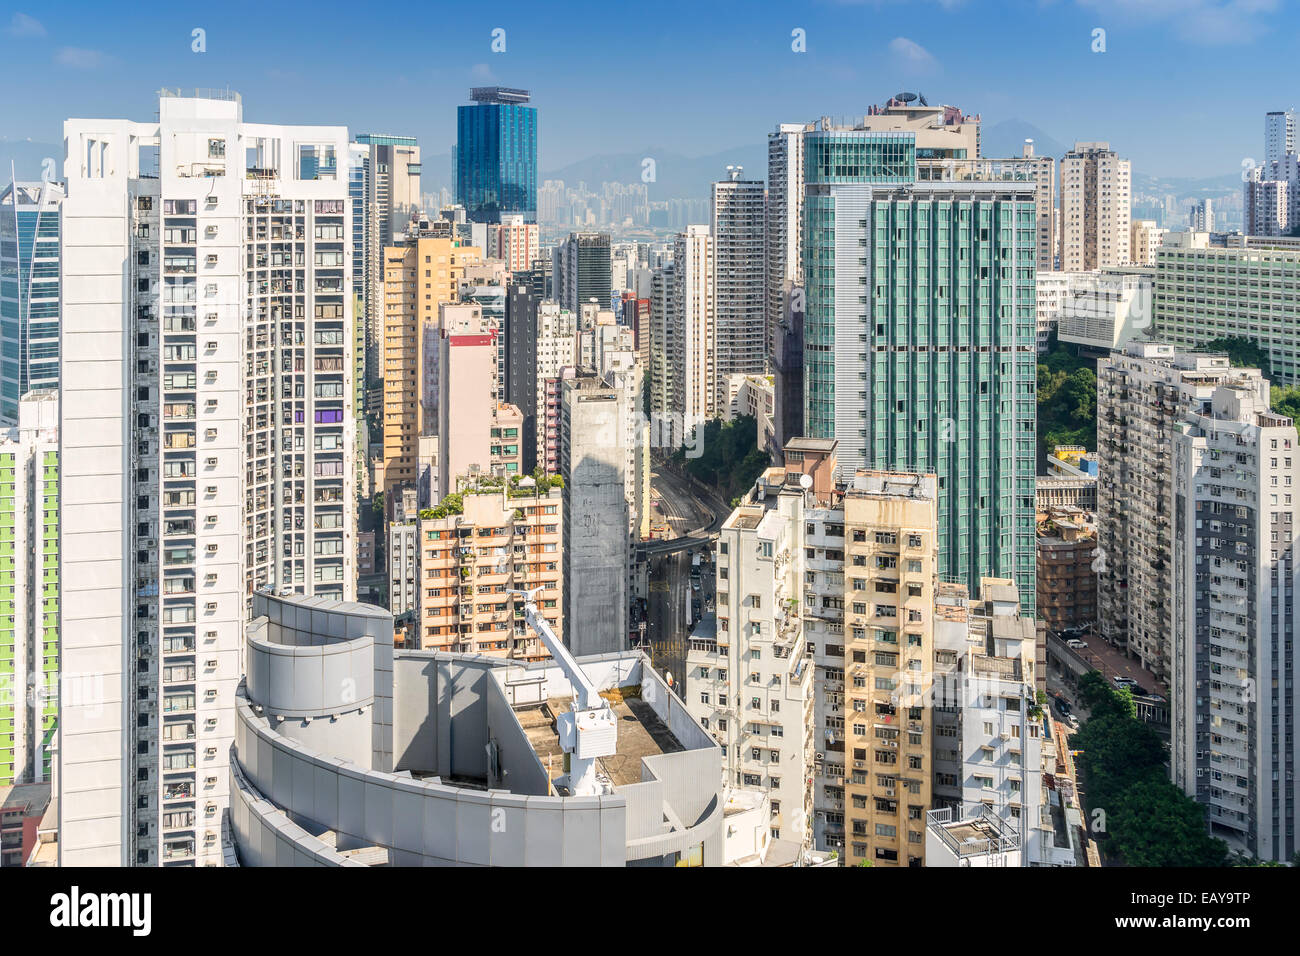 causeway bay hong kong harbour stock photos causeway bay hong kong harbour stock images alamy. Black Bedroom Furniture Sets. Home Design Ideas